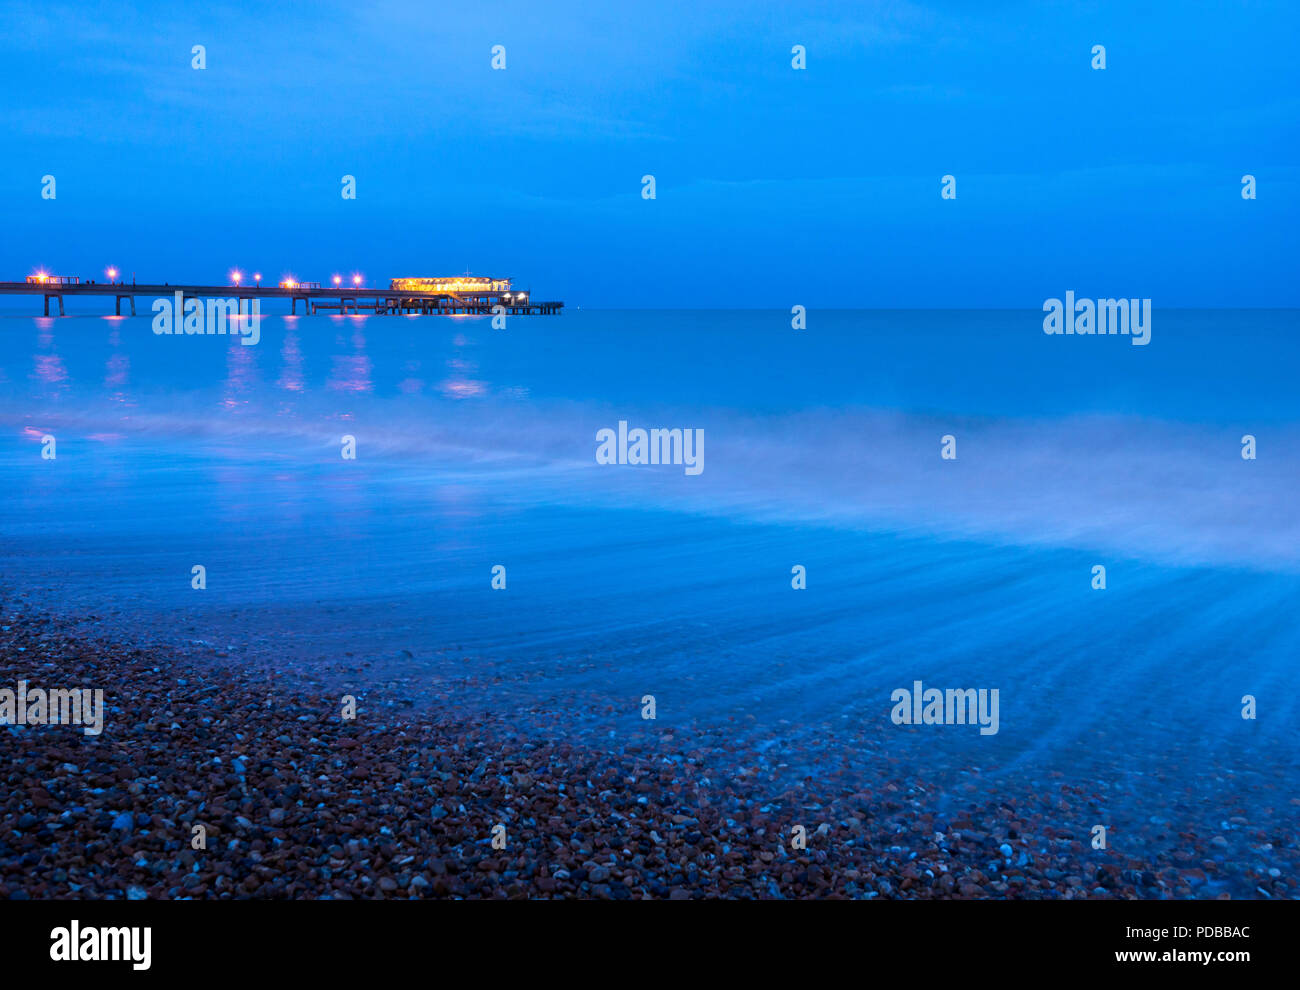 Waves crashing along Deal seafront at dusk with Deal Pier illuminated in the background. - Stock Image